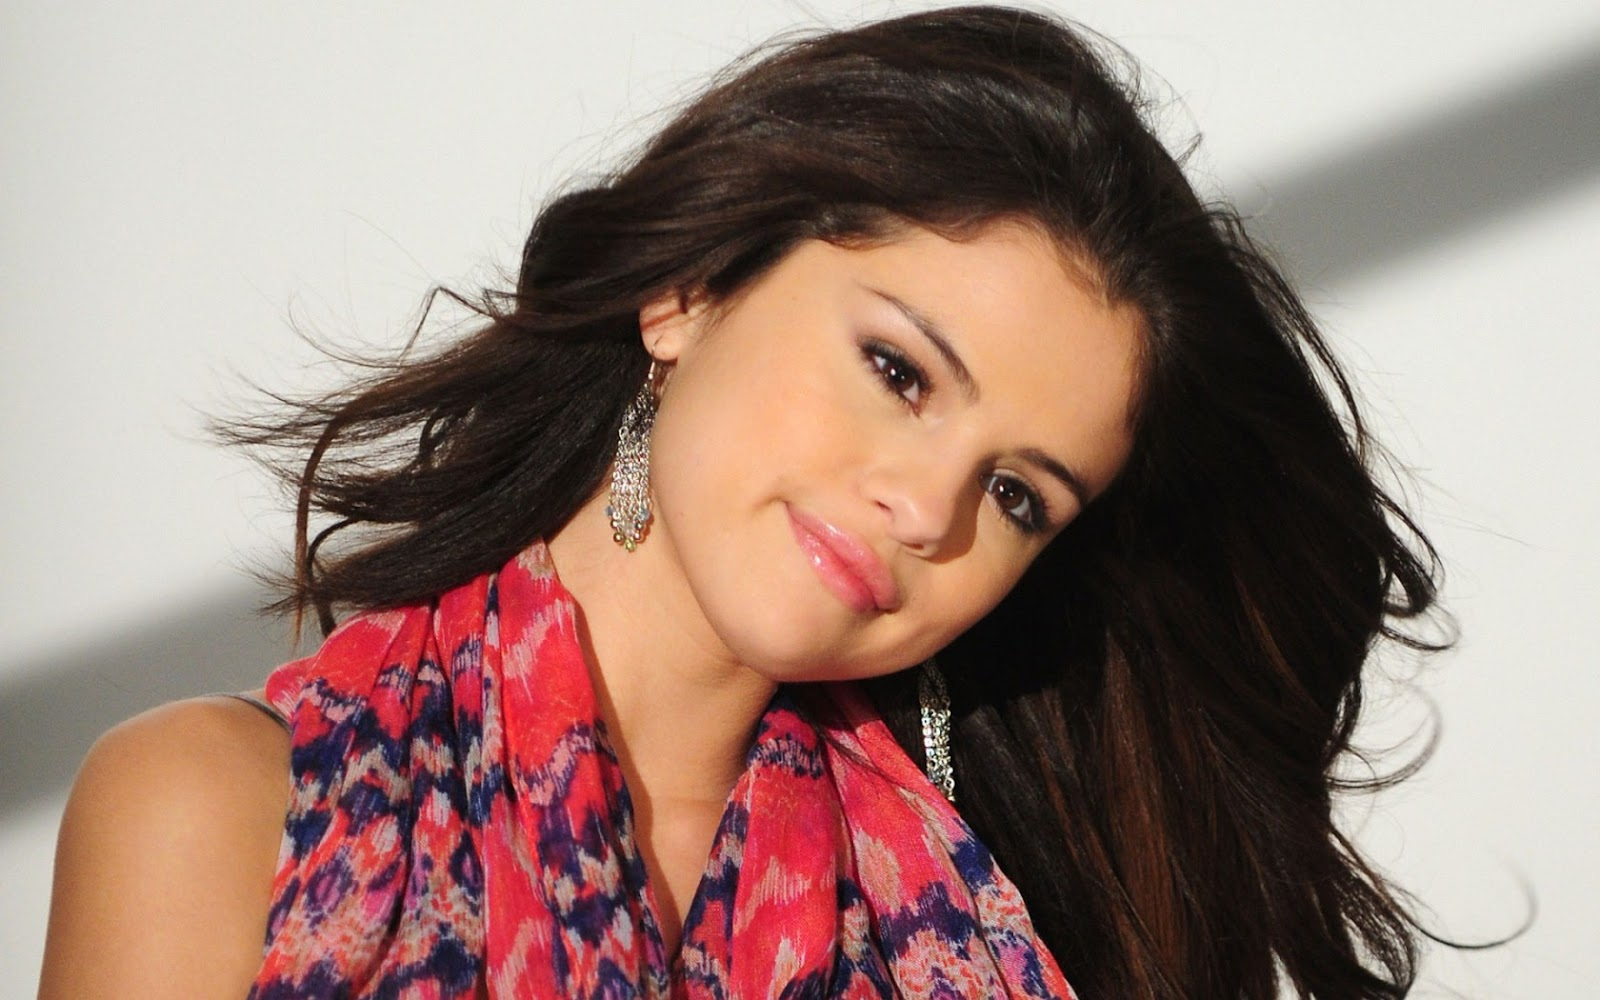 Selena Gomez Latest Hot Hd Wallpapers For Desktop And Notebook-1758